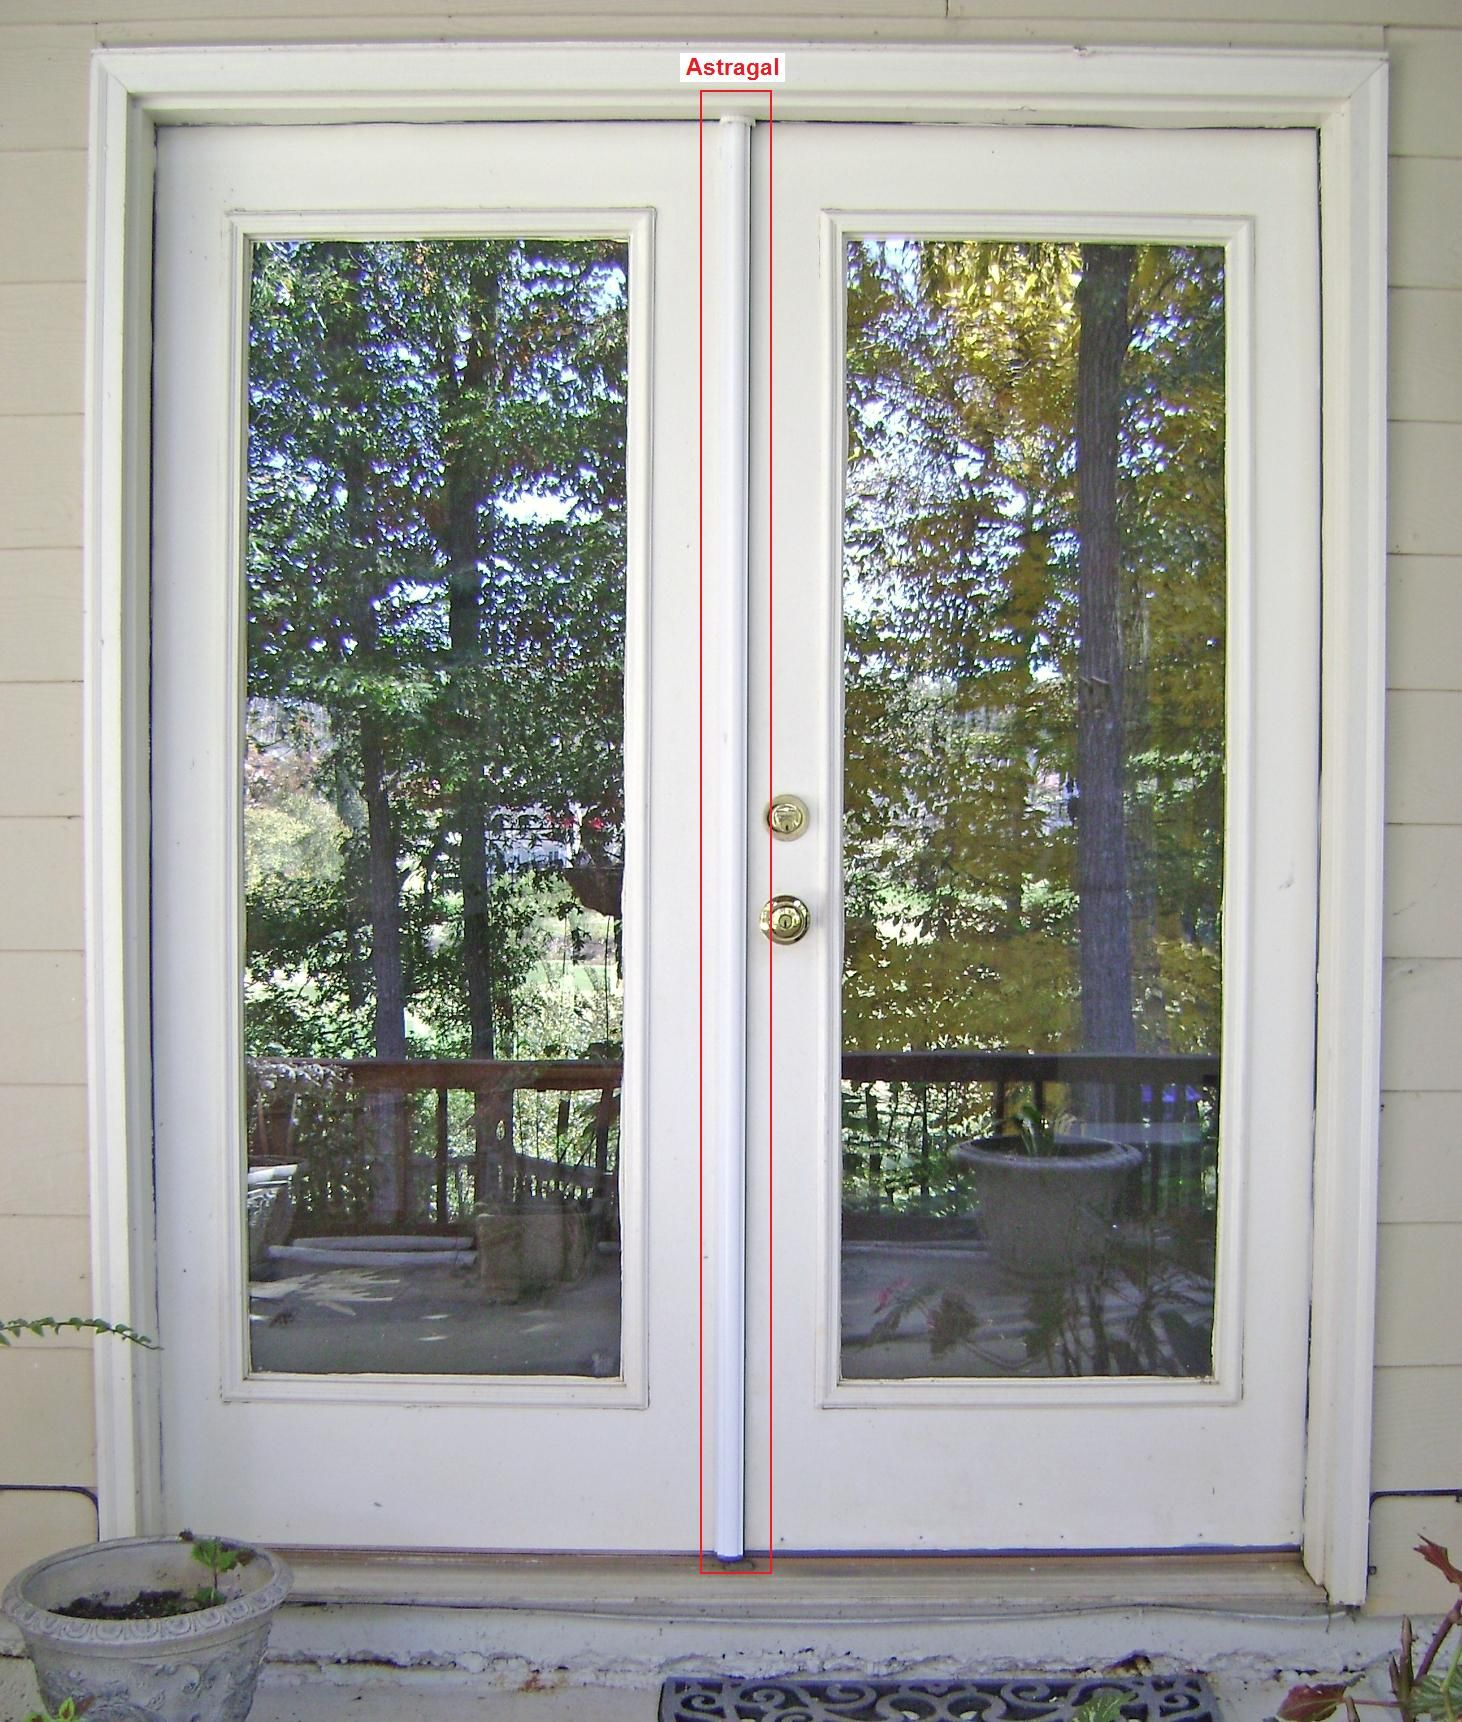 Patio French Doors For Sale Part - 22: Simple French Door, No Panes, Hopefully Smoked Or Reflective To The Sun.  Energy. Patio Doors For SaleExterior ...